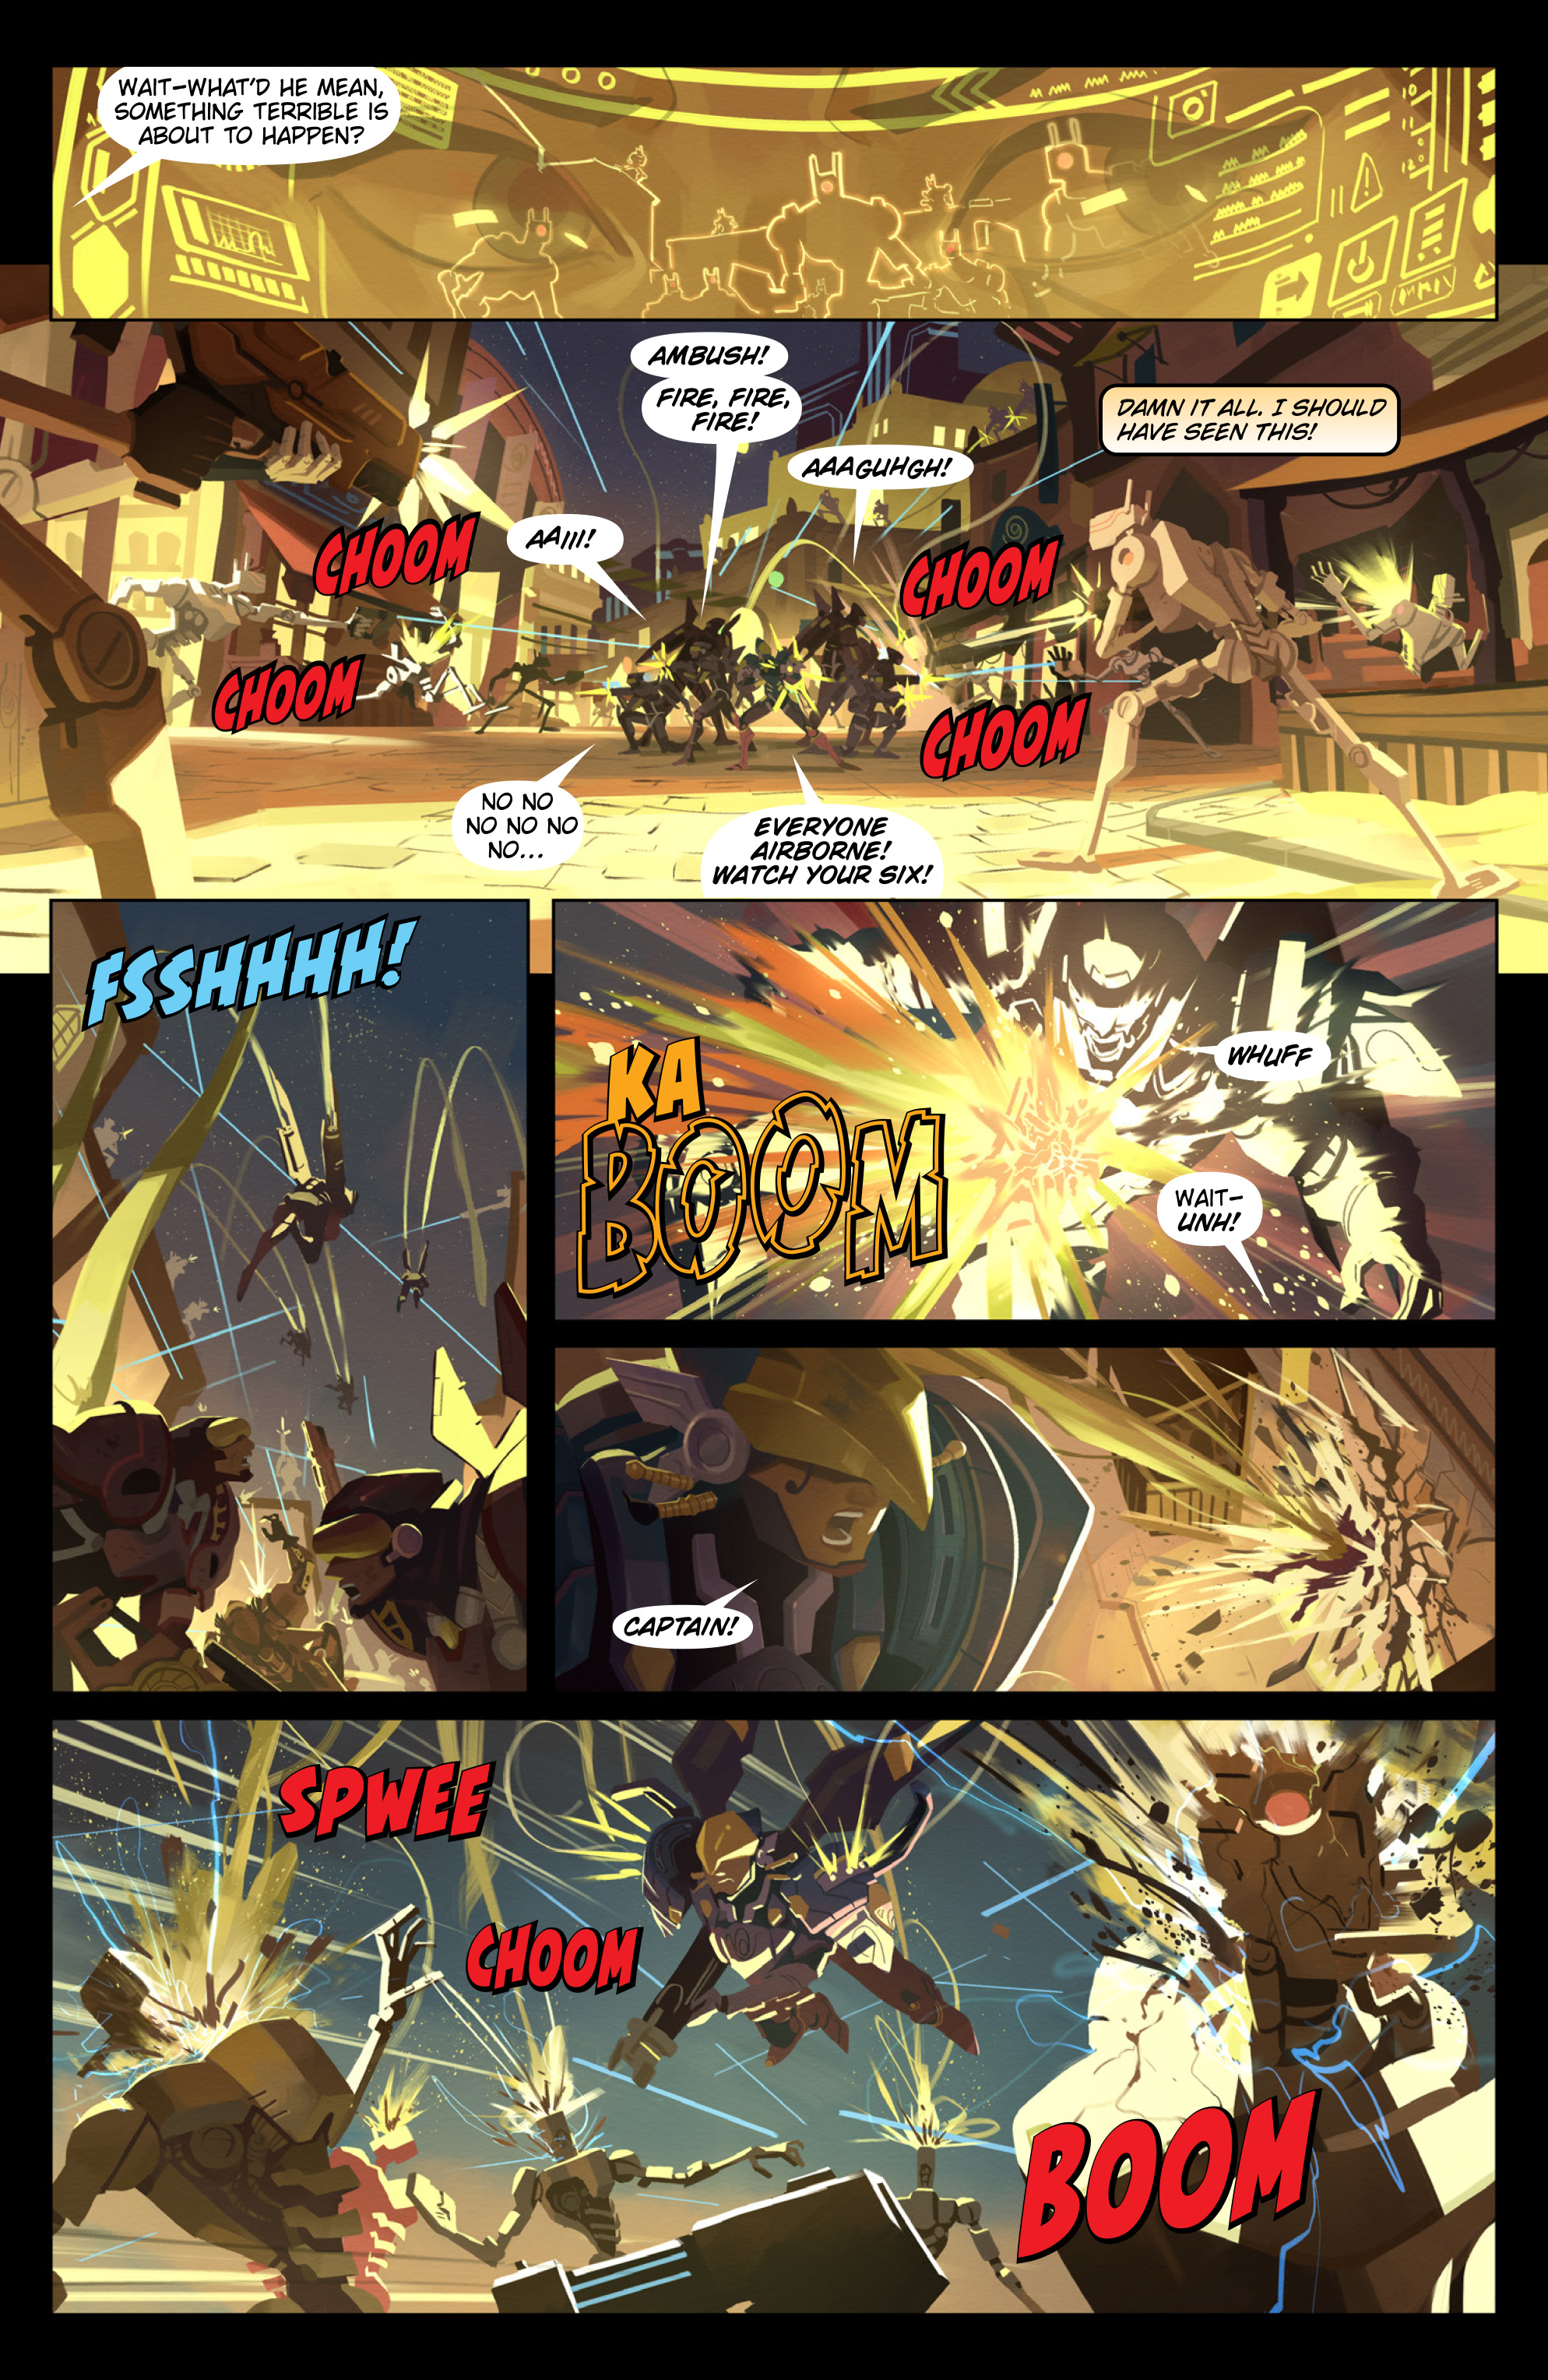 005-OW_PHARAH_Comic_EN-5.jpg